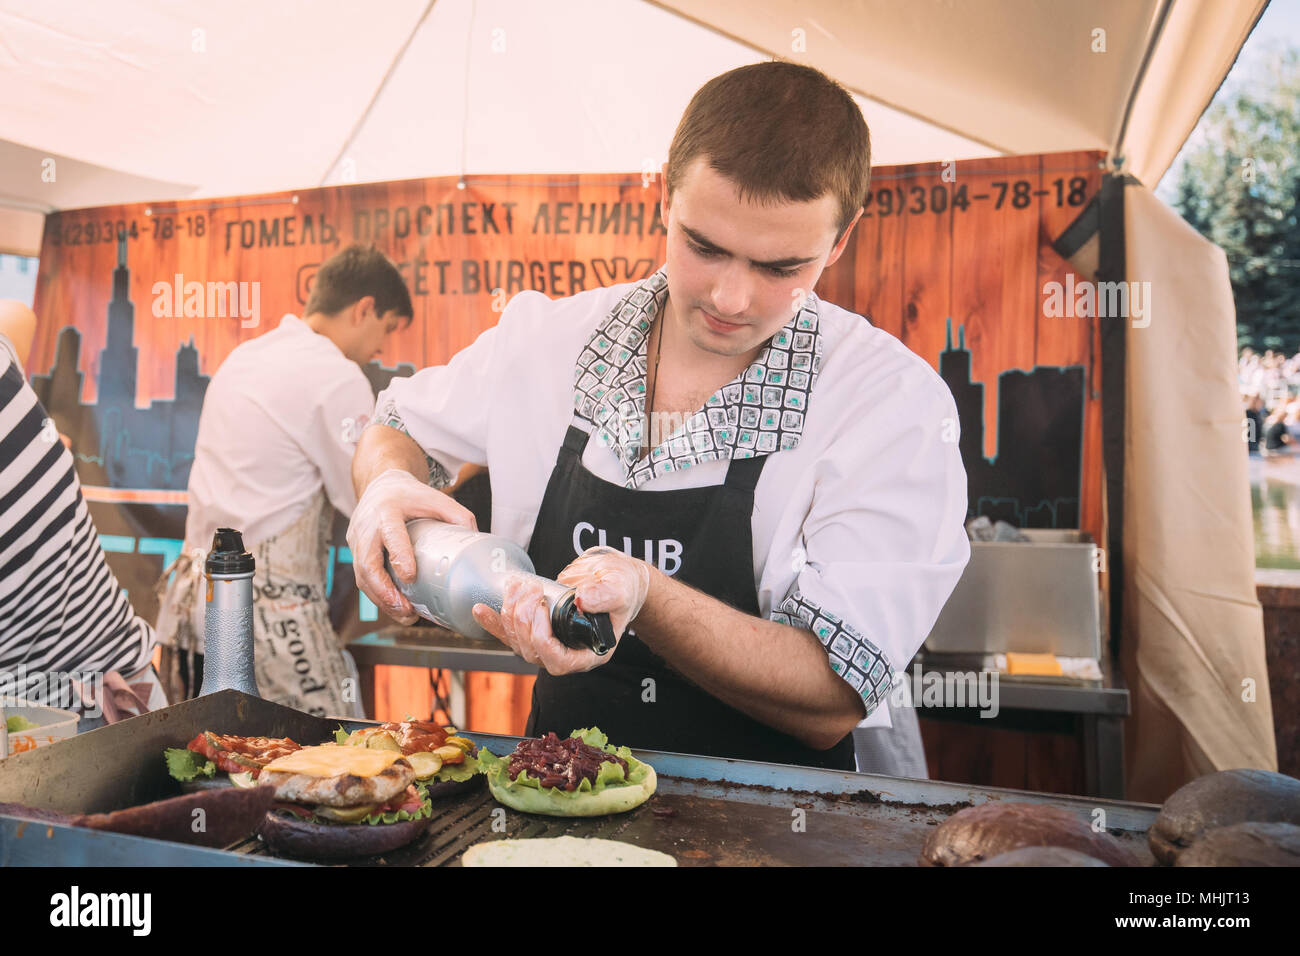 Gomel, Belarus. Man Cooking Burger On Gastronomic Festival City Food In Summer Day. - Stock Image